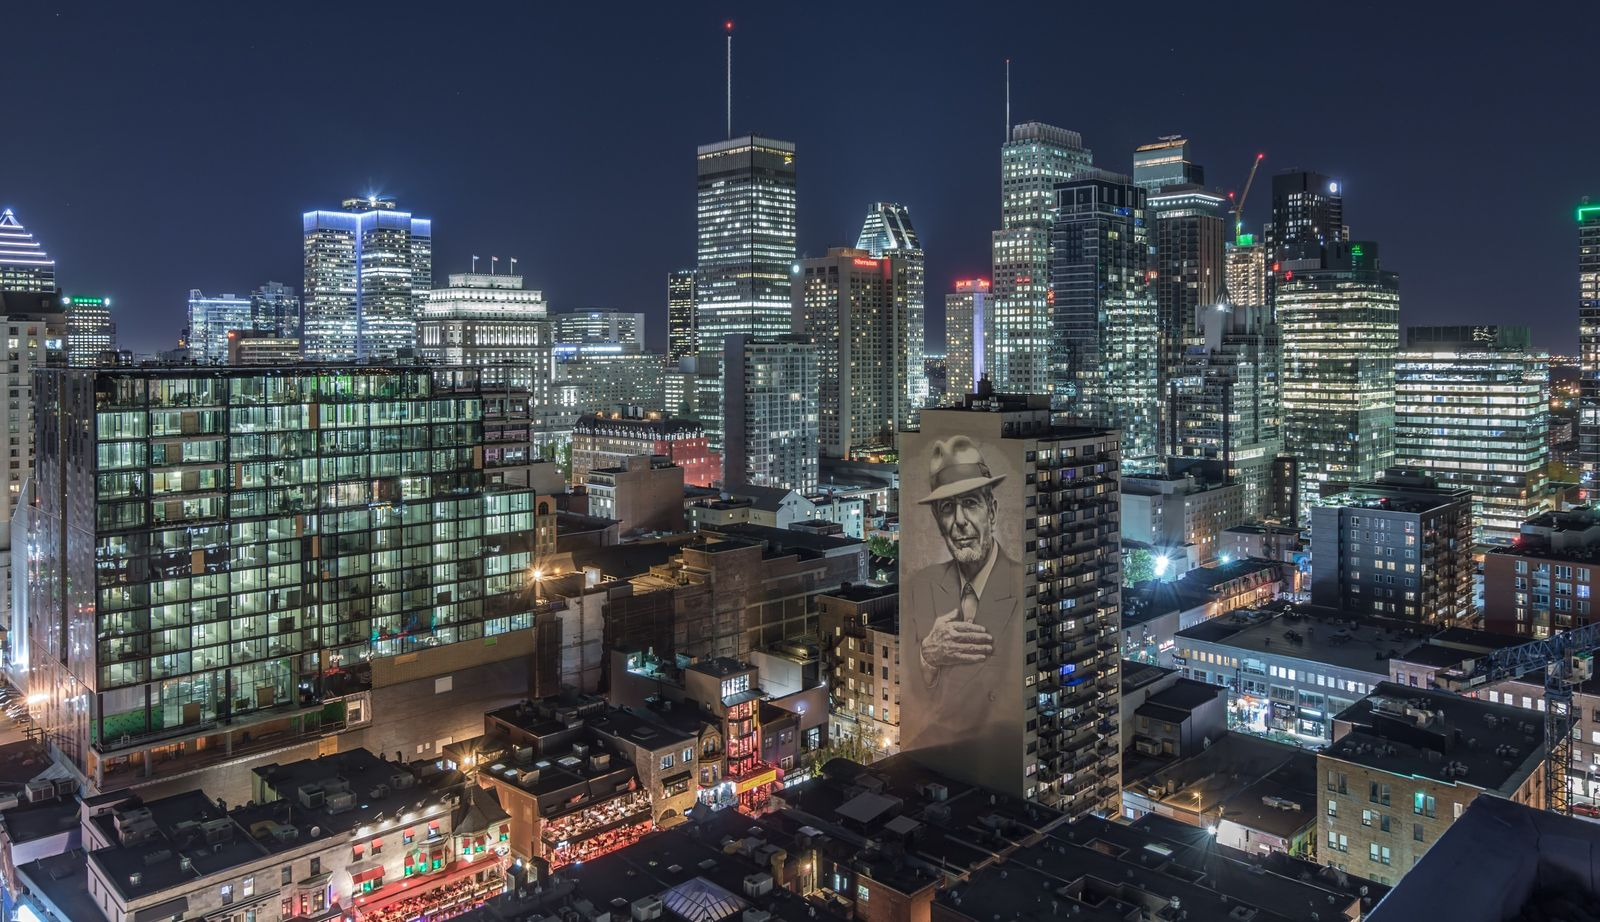 10 Surprising Ways to Discover Old and New Montreal